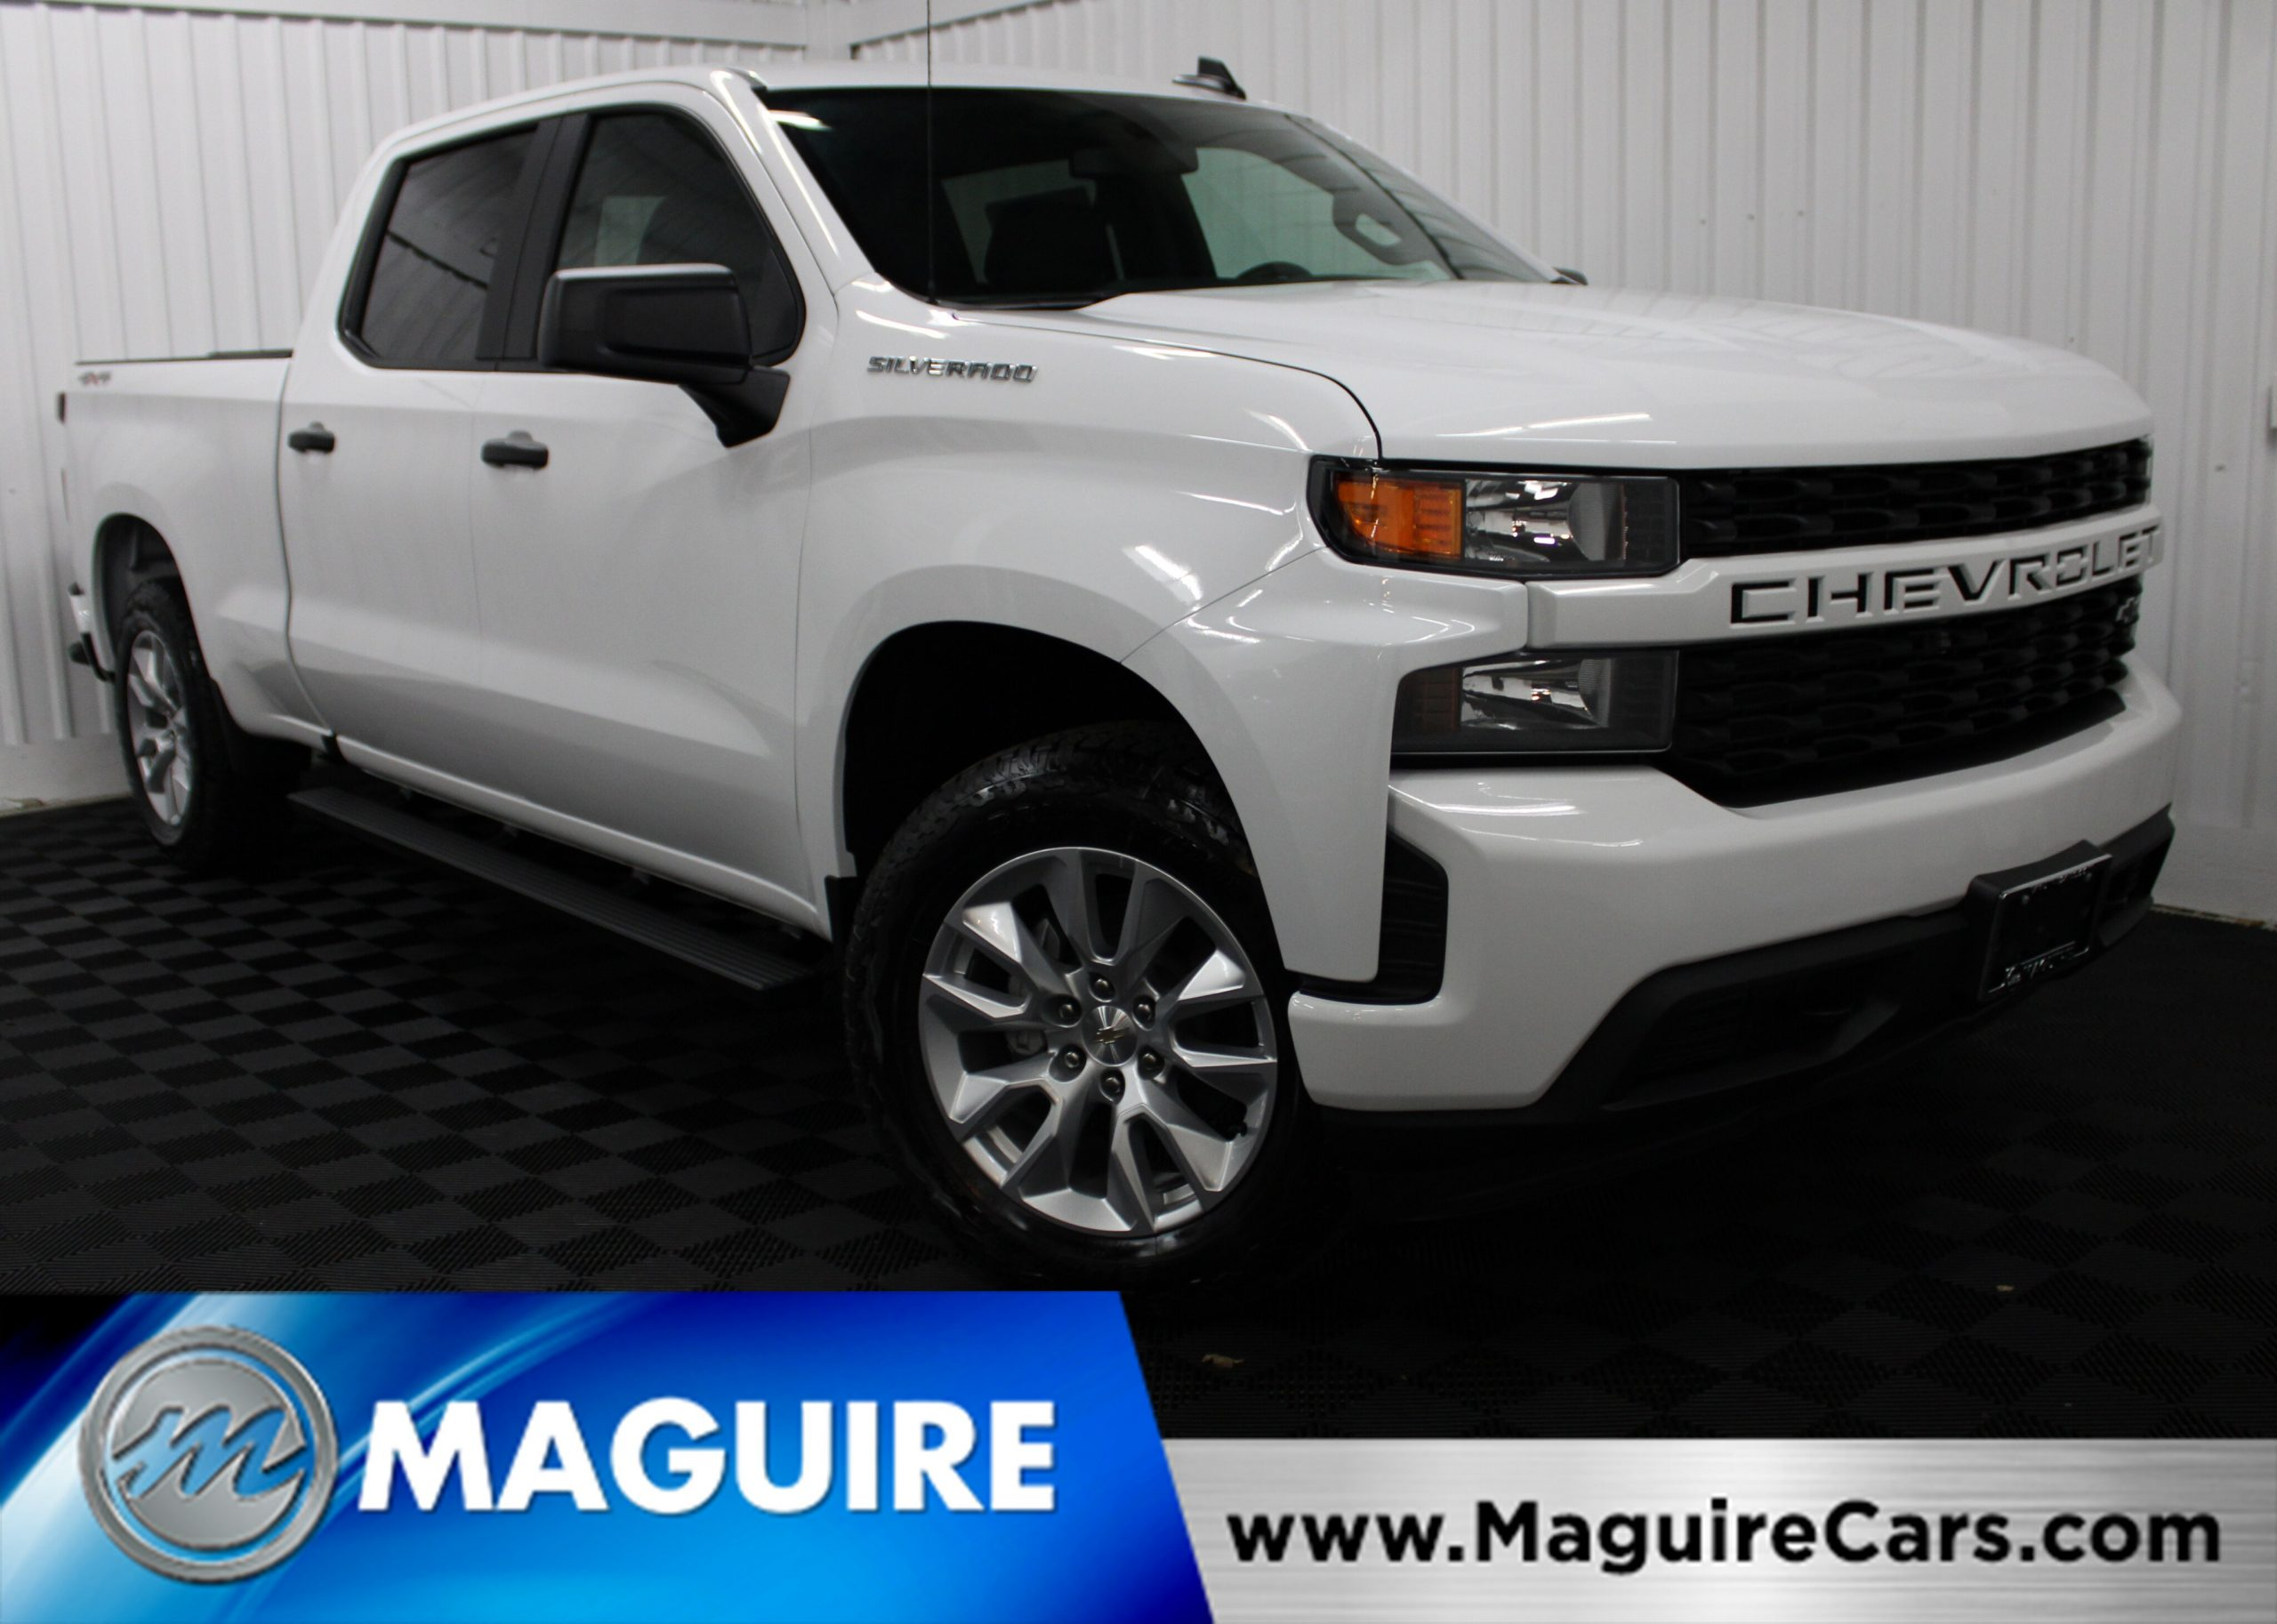 New 2020 Chevrolet Silverado 1500 For Sale At Maguire Family 2021 Chevy Silverado 1500 Crew Cab Running Boards, Price, Curb Weight